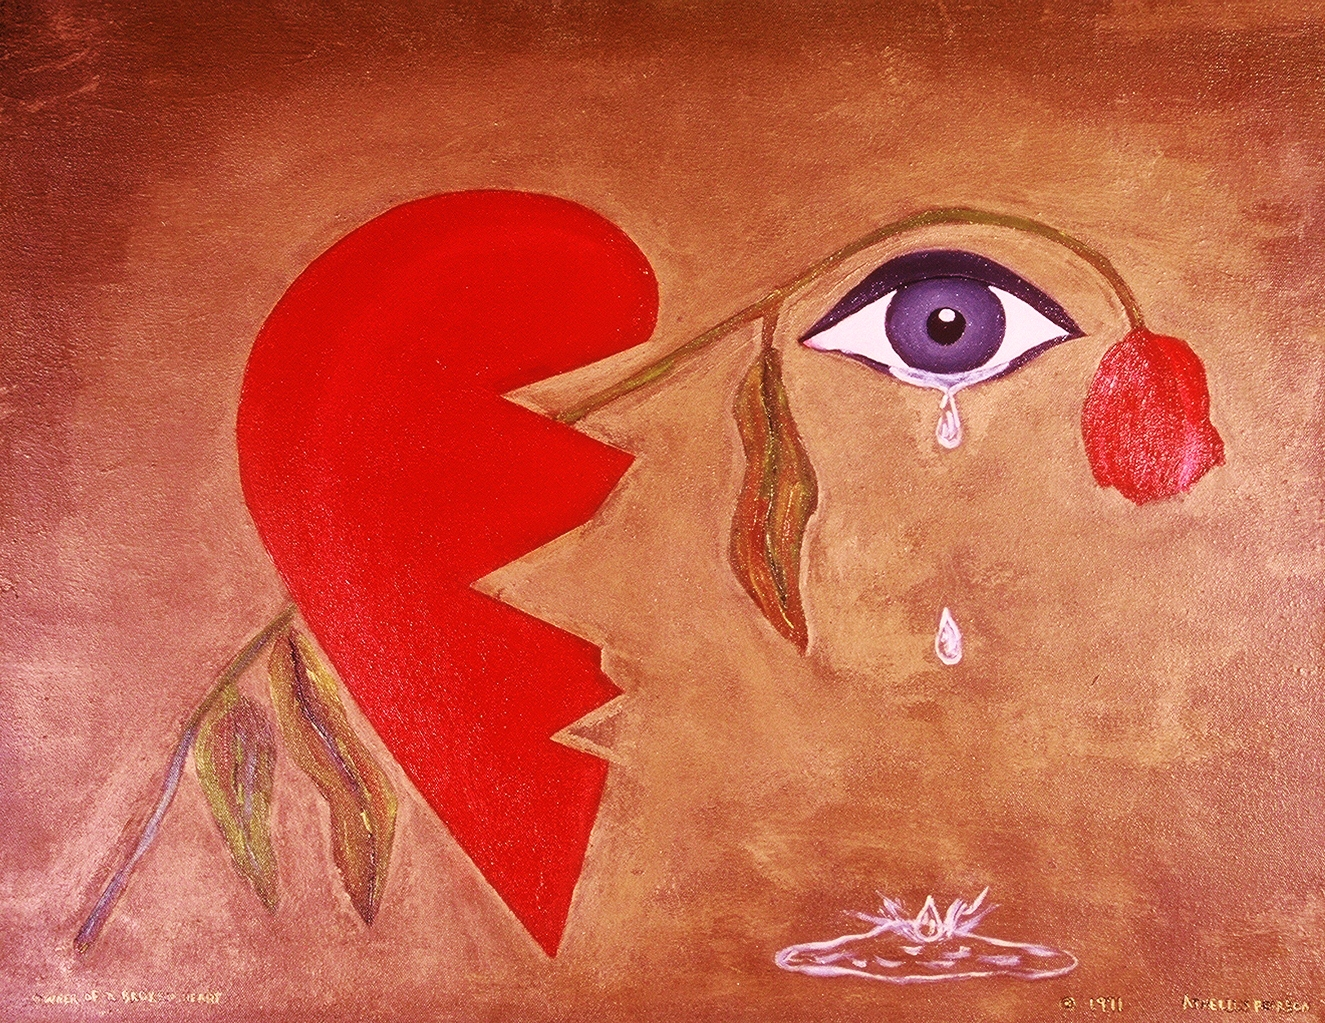 Tears of a Broken Heart